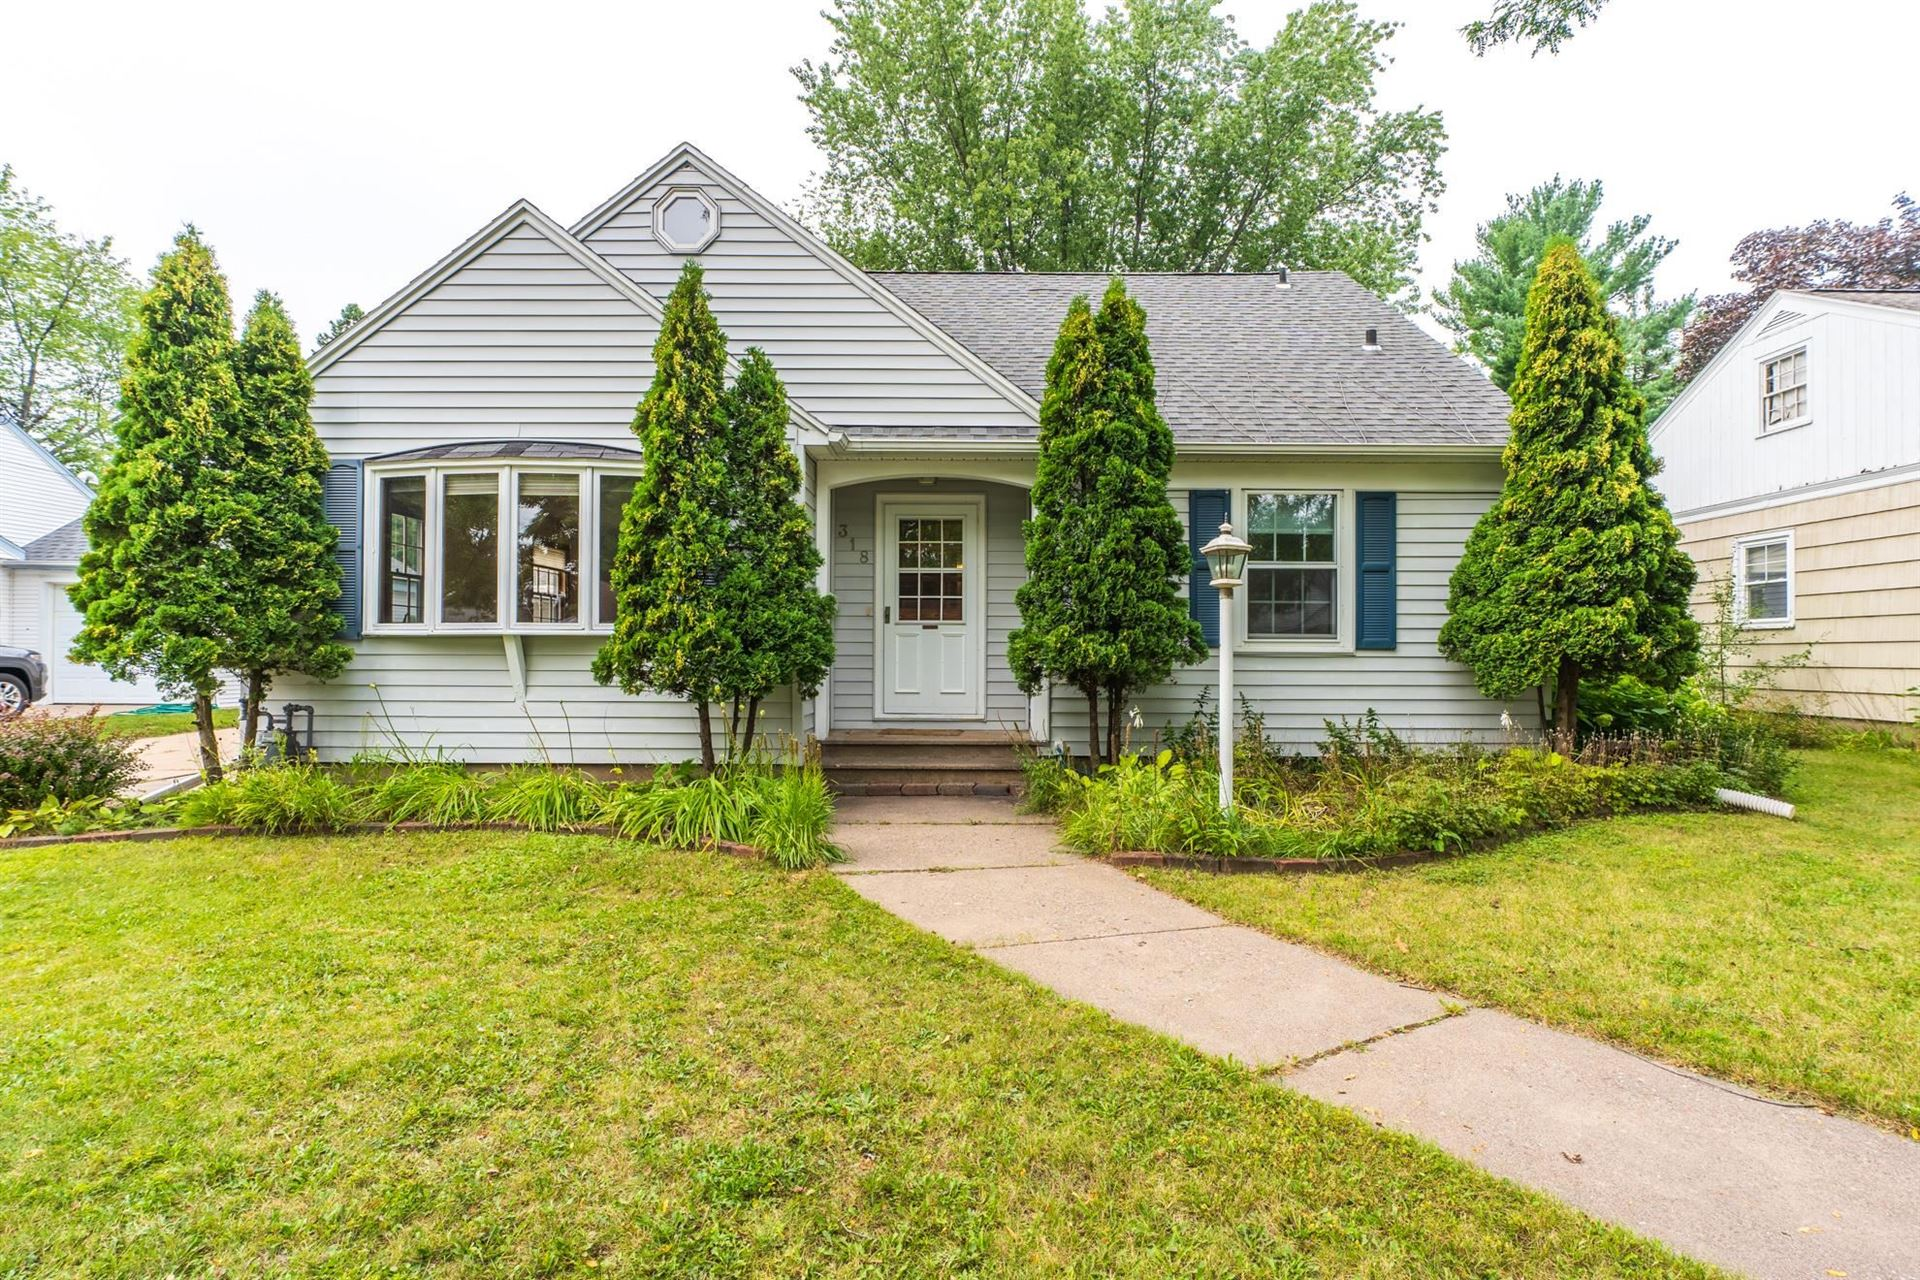 Photo for 318 ROSS AVENUE, Wausau, WI 54403 (MLS # 22105016)